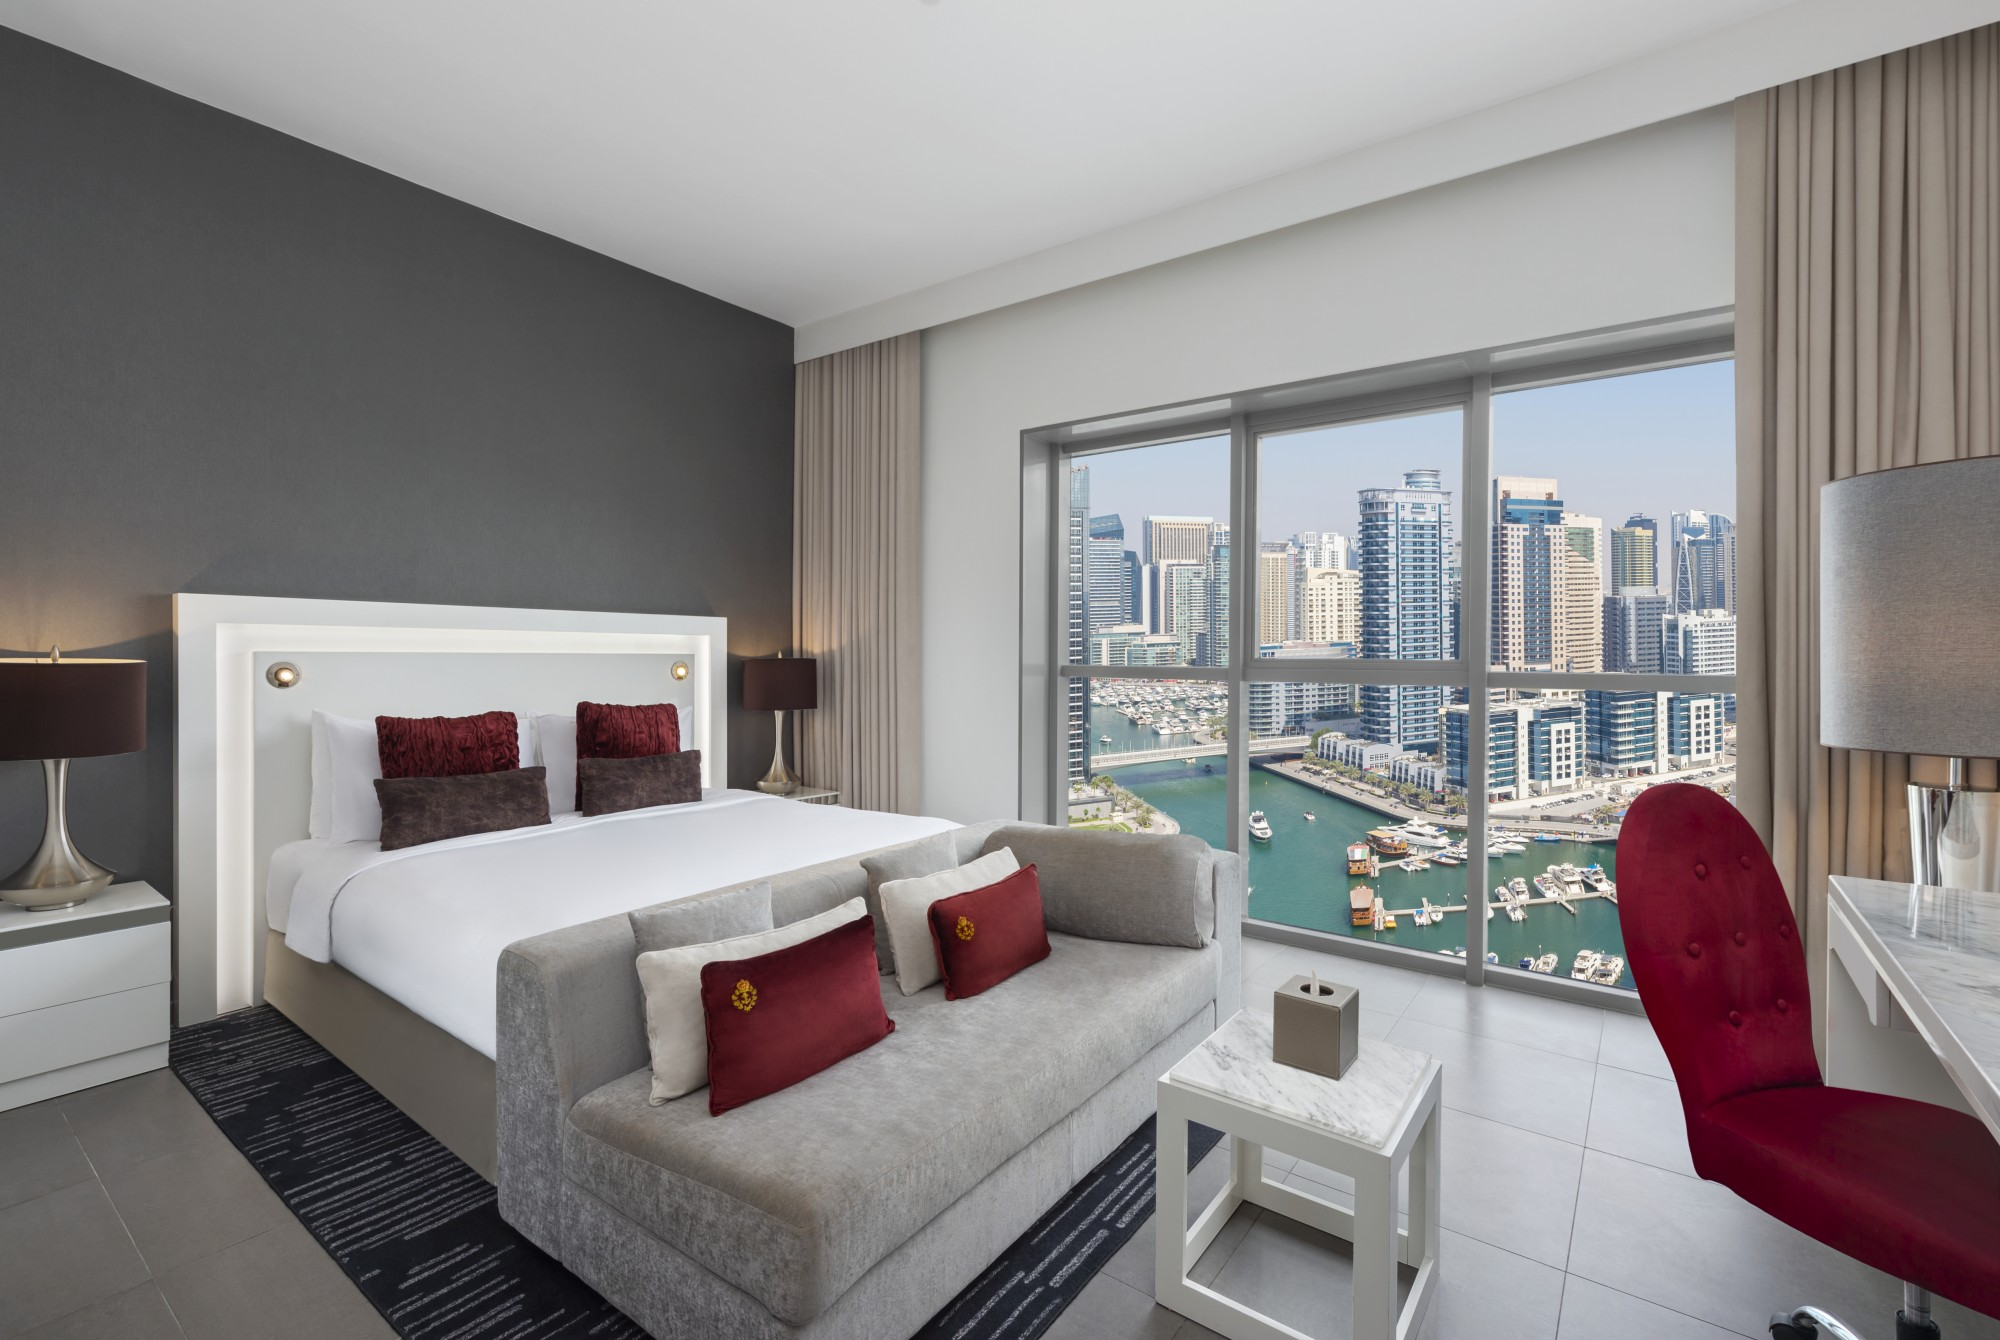 All Bills Included | Housekeeping | Hotel Living In Dubai Marina | Benefits For Stays of 30+ Days